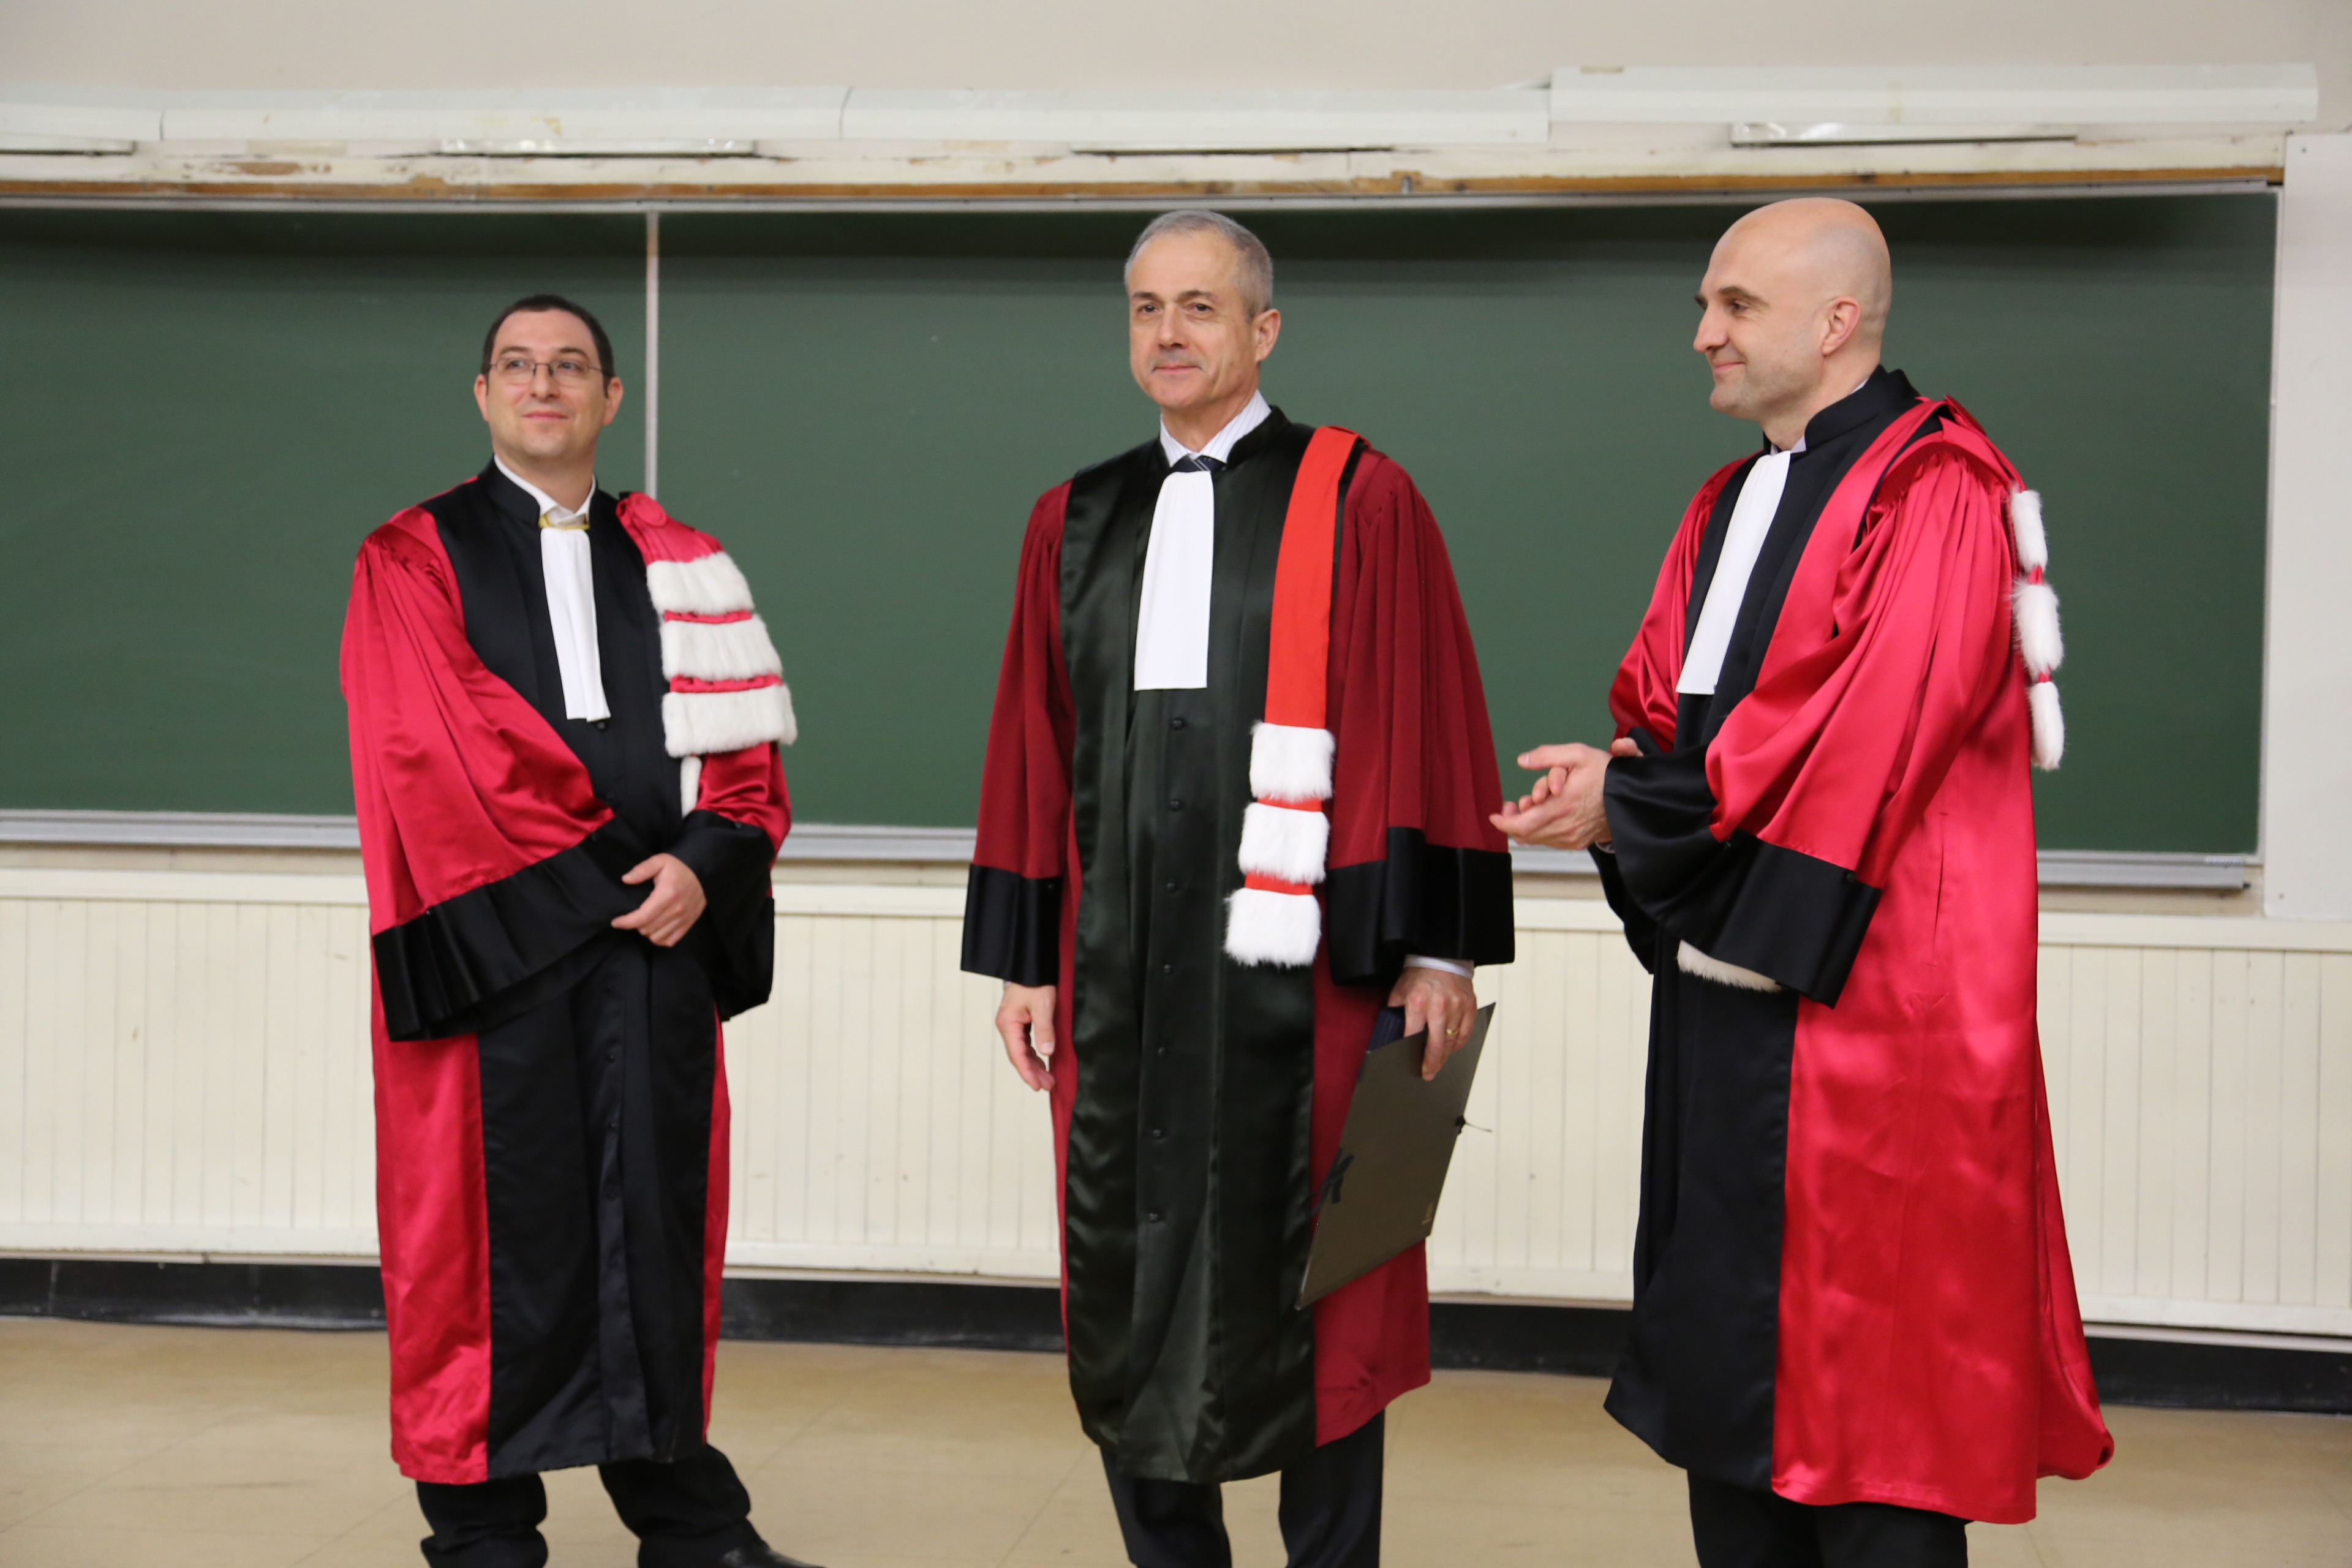 Adrian Bejan is awarded a Doctorate Honoris Causa—or honorary doctorate degree—by the INSA de Lyon (Institut National des Sciences Appliquees), one of France's leading universities.